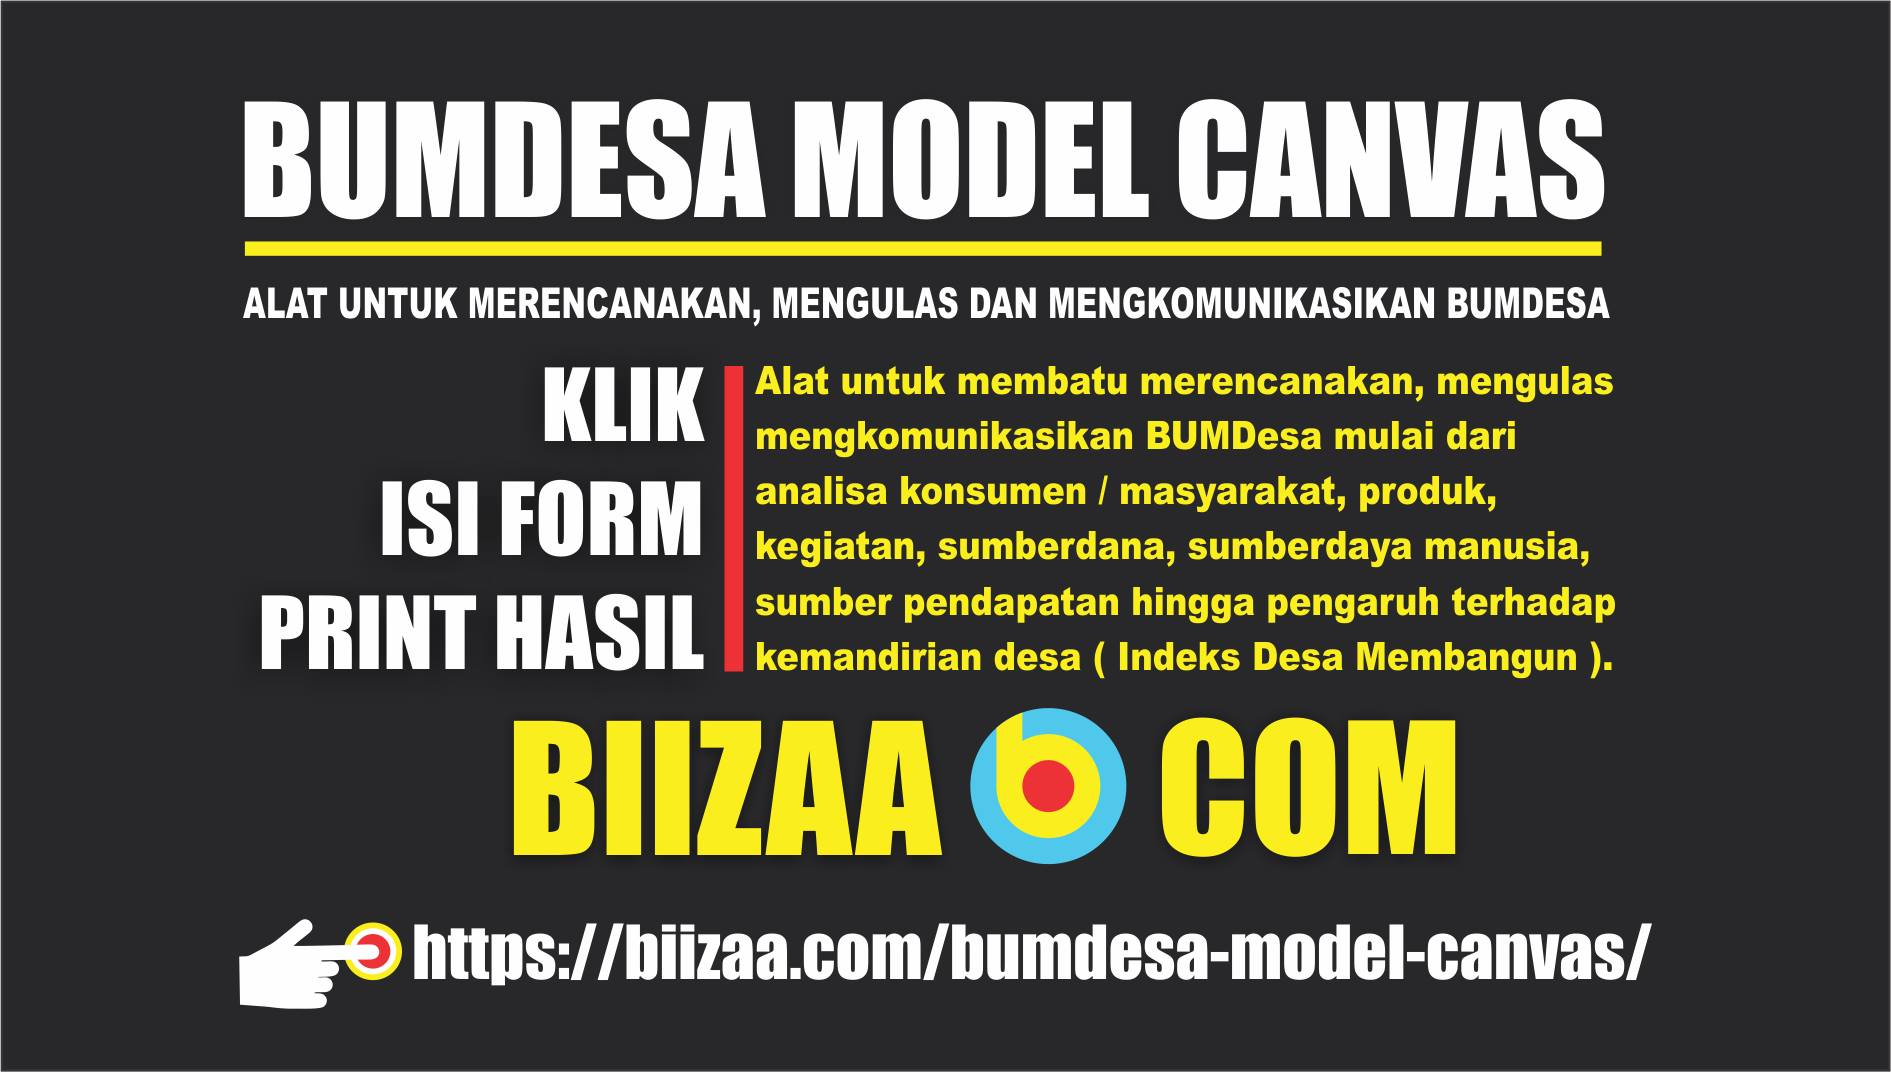 Bumdesa Model Canvas New